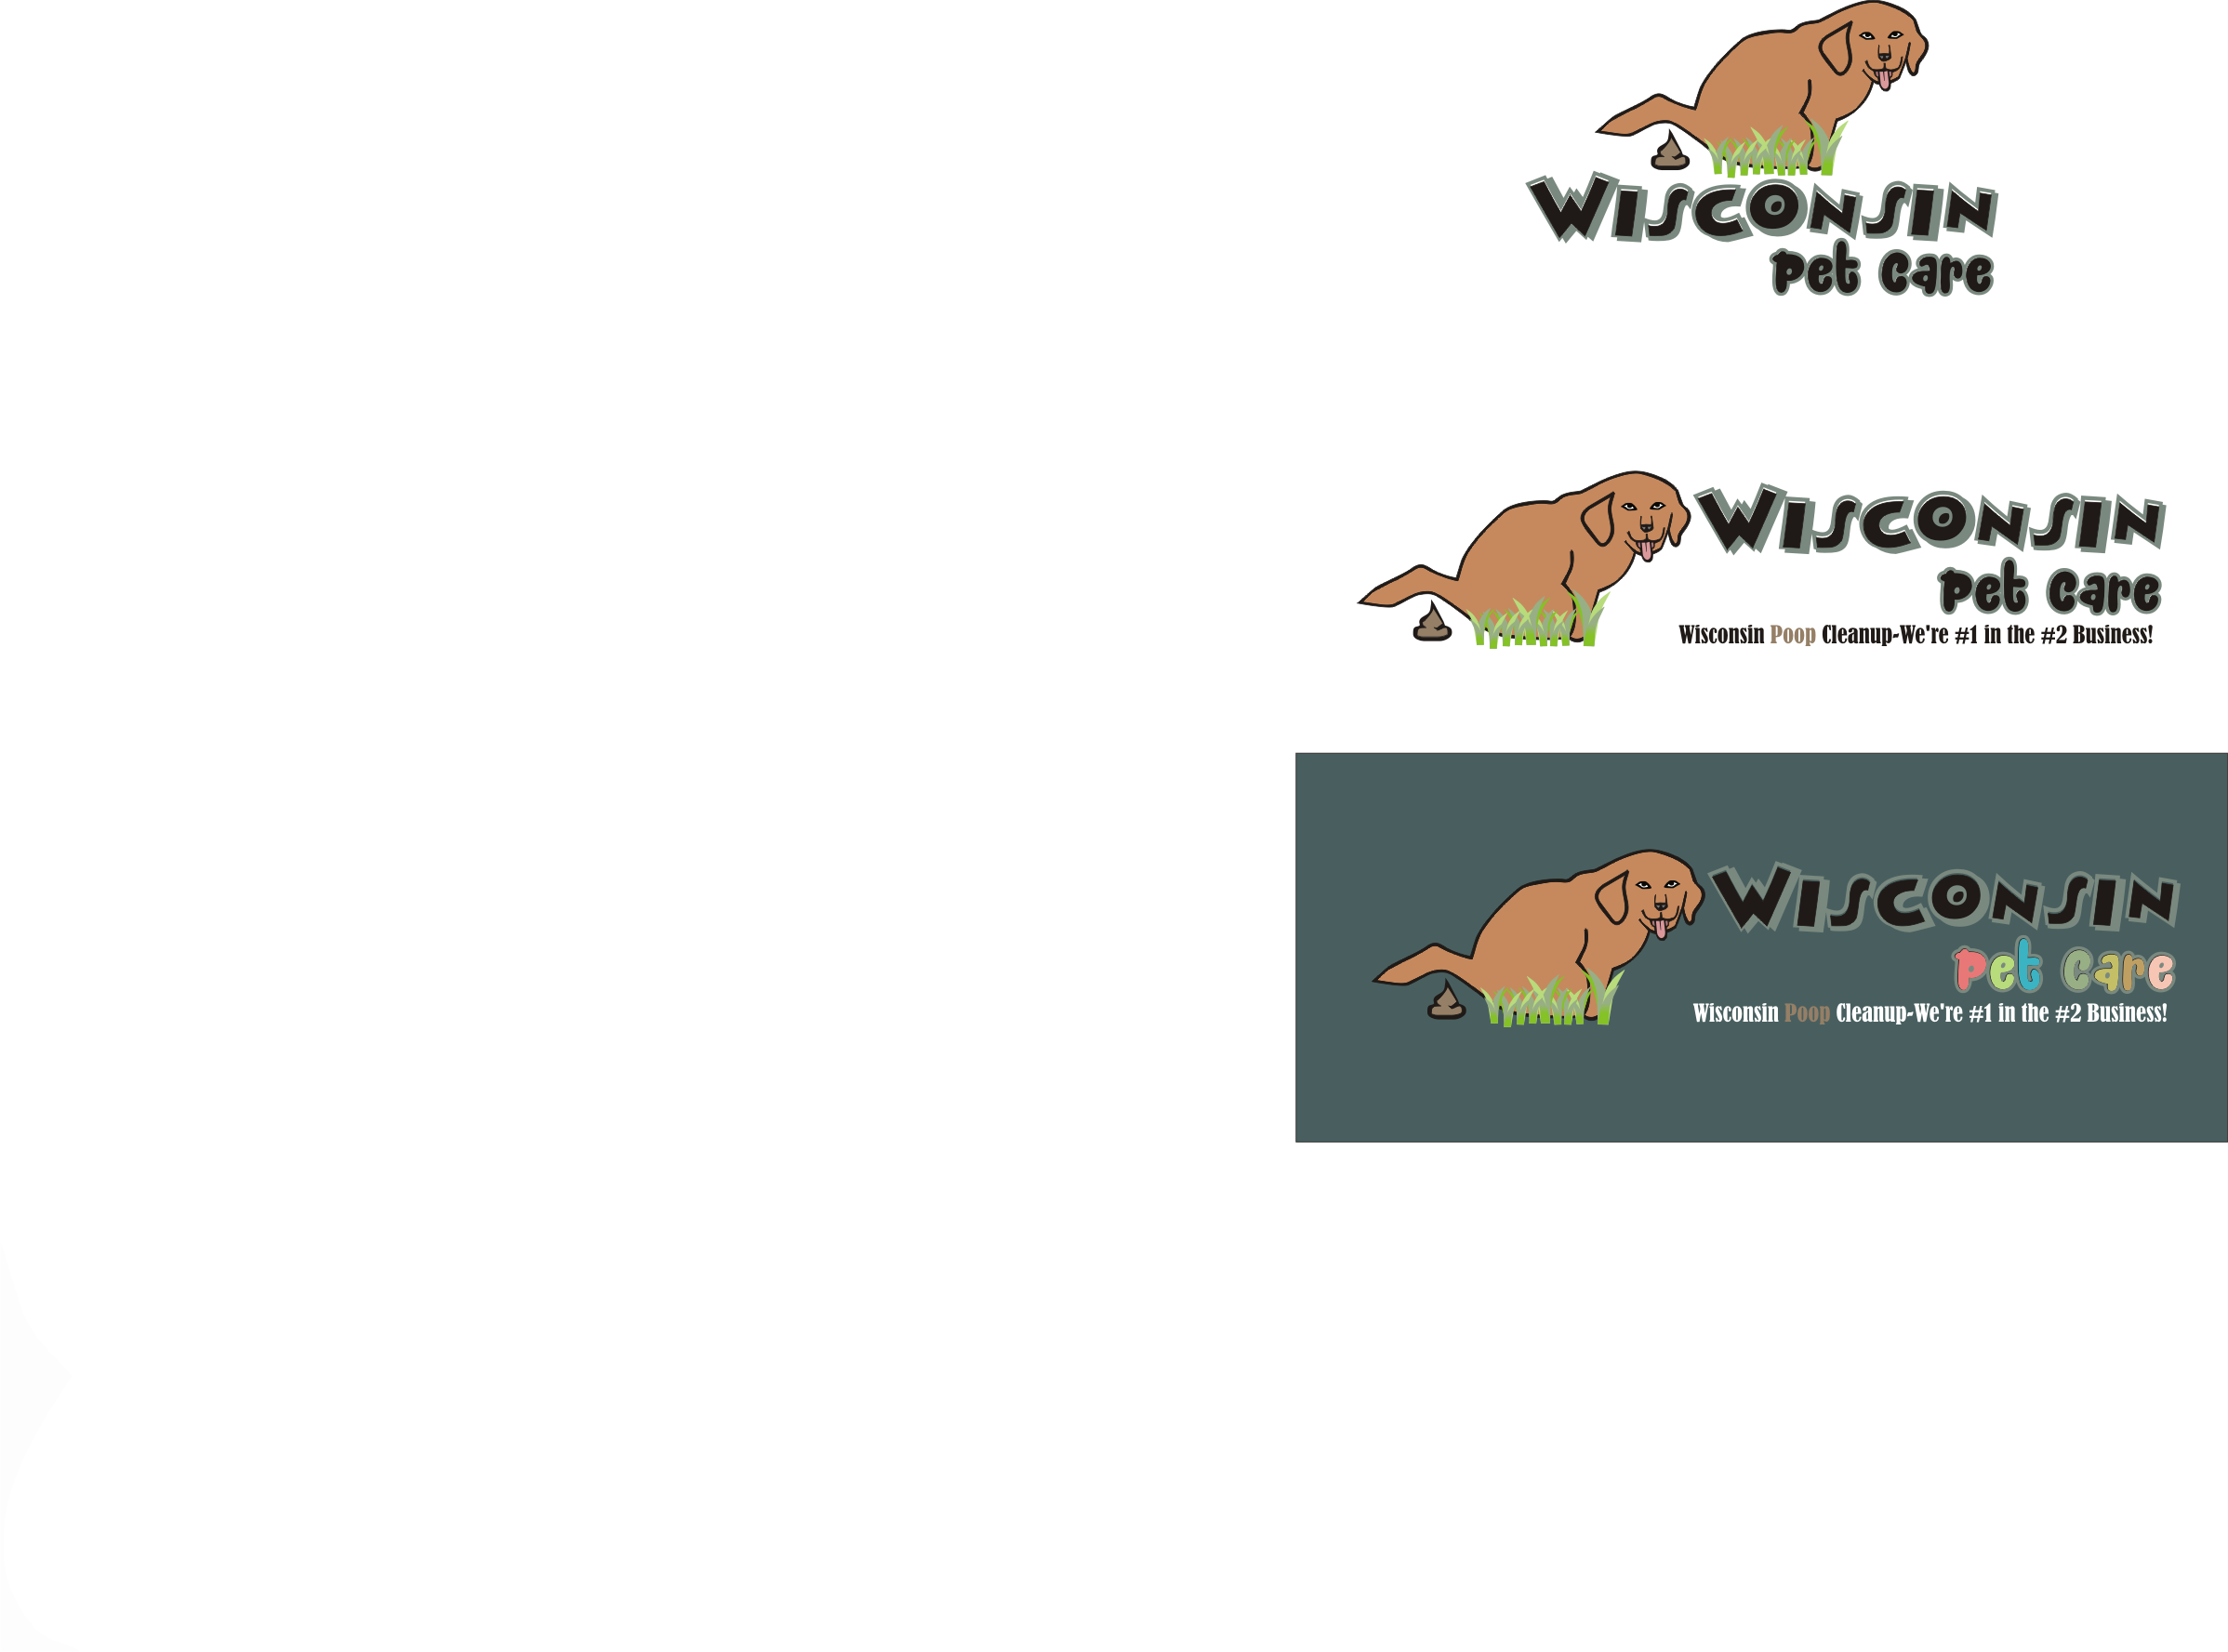 Logo Design by Nthus Nthis - Entry No. 29 in the Logo Design Contest Captivating Logo Design for Wisconsin Pet Care.